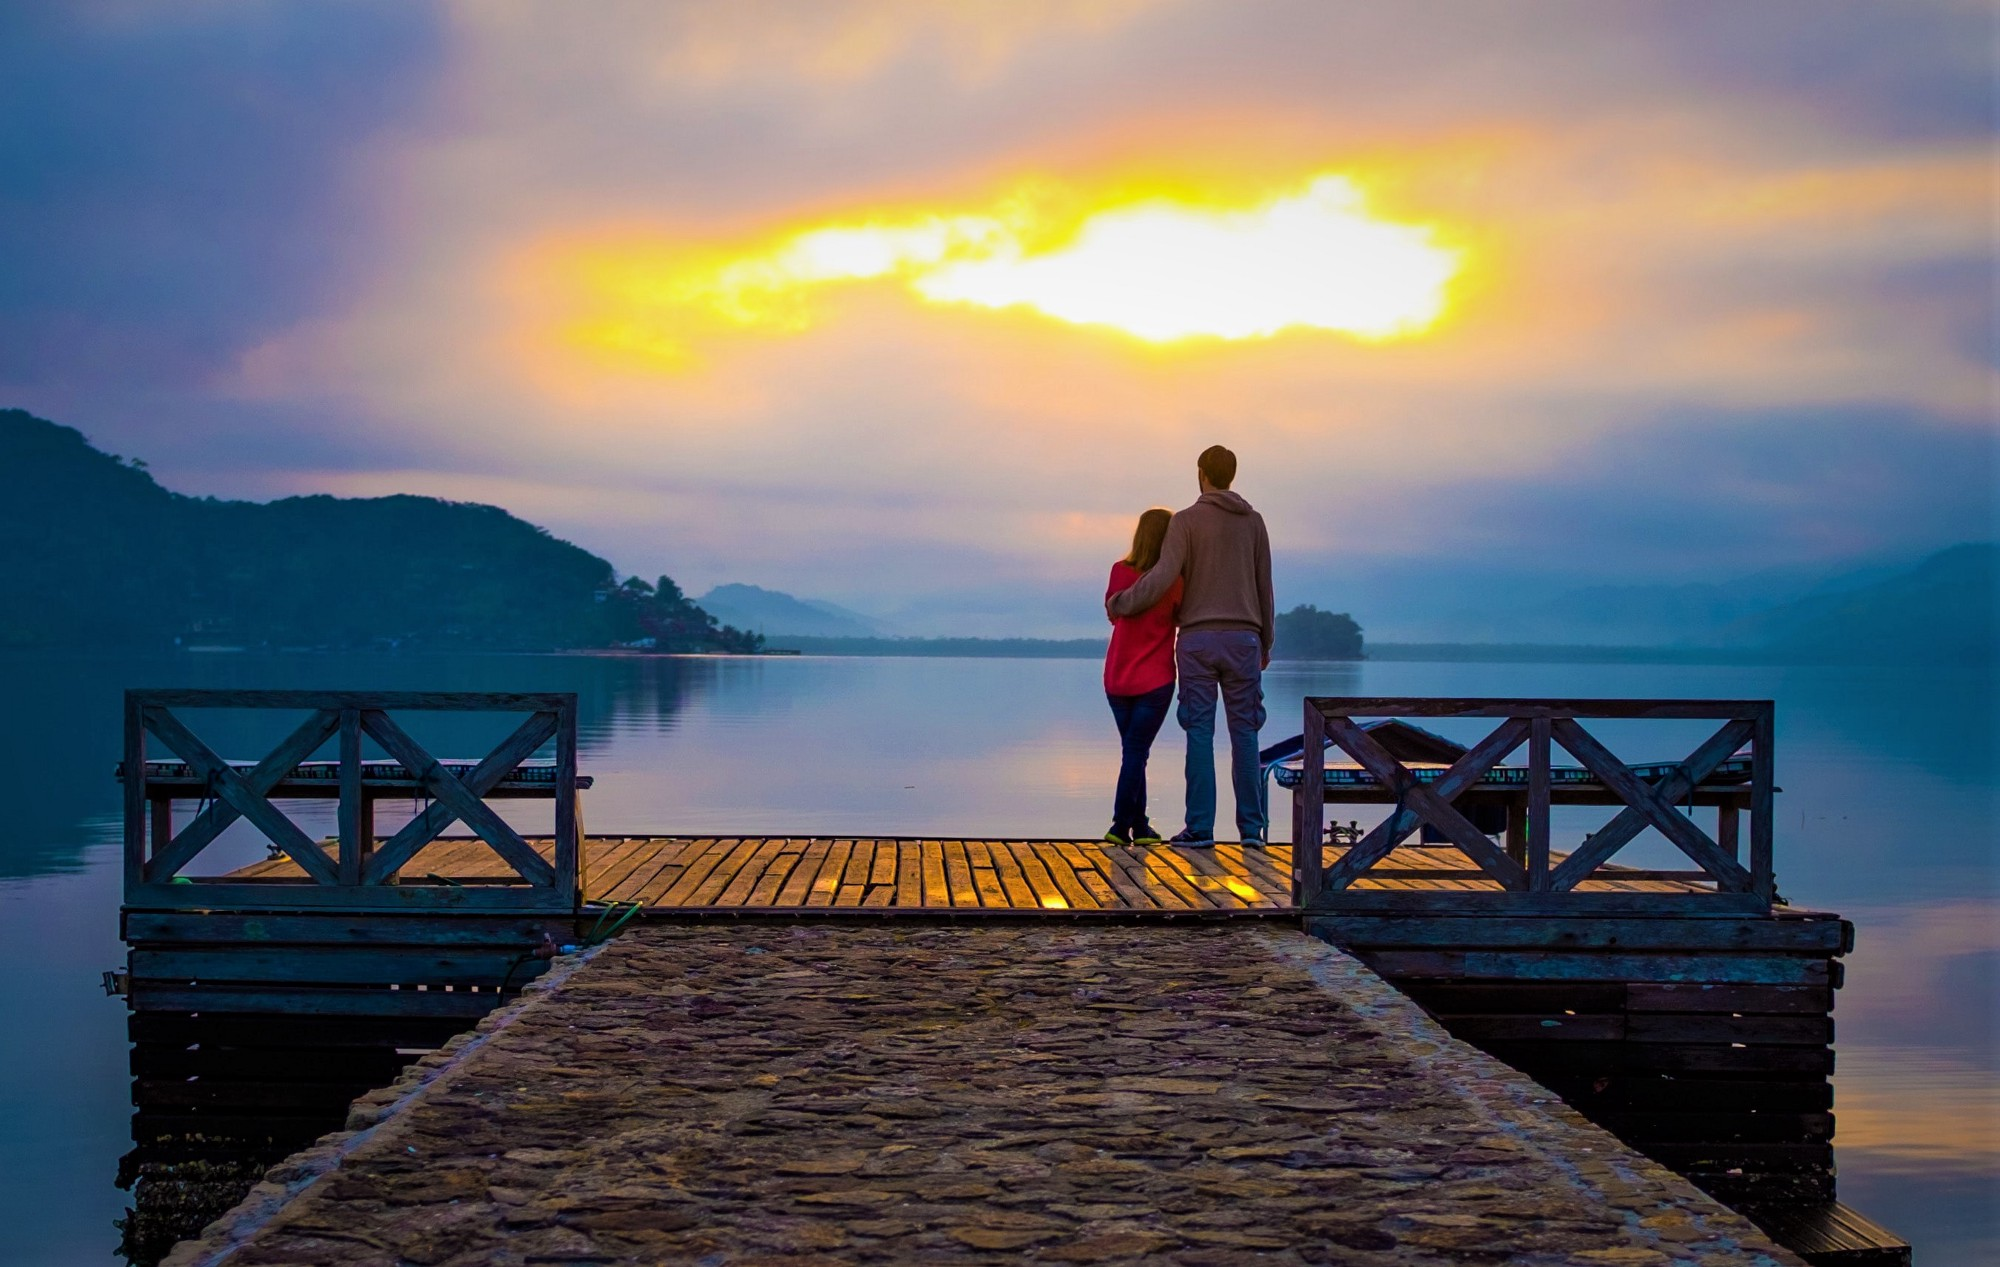 man and woman standing on end of pier looking out over ocean and sunset